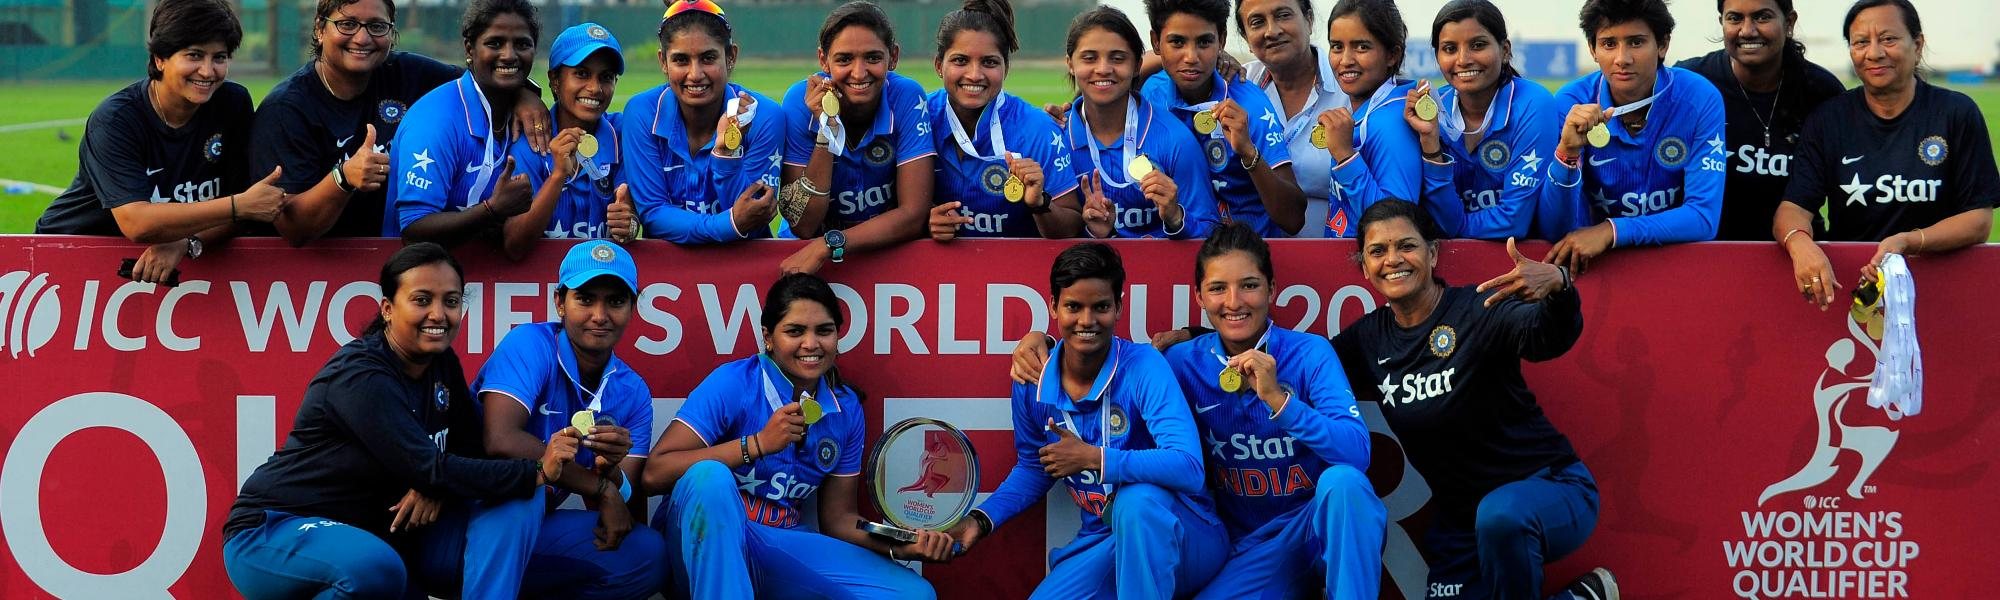 India Women with the trophy after winning the Women's World Cup Qualifier against South Africa.